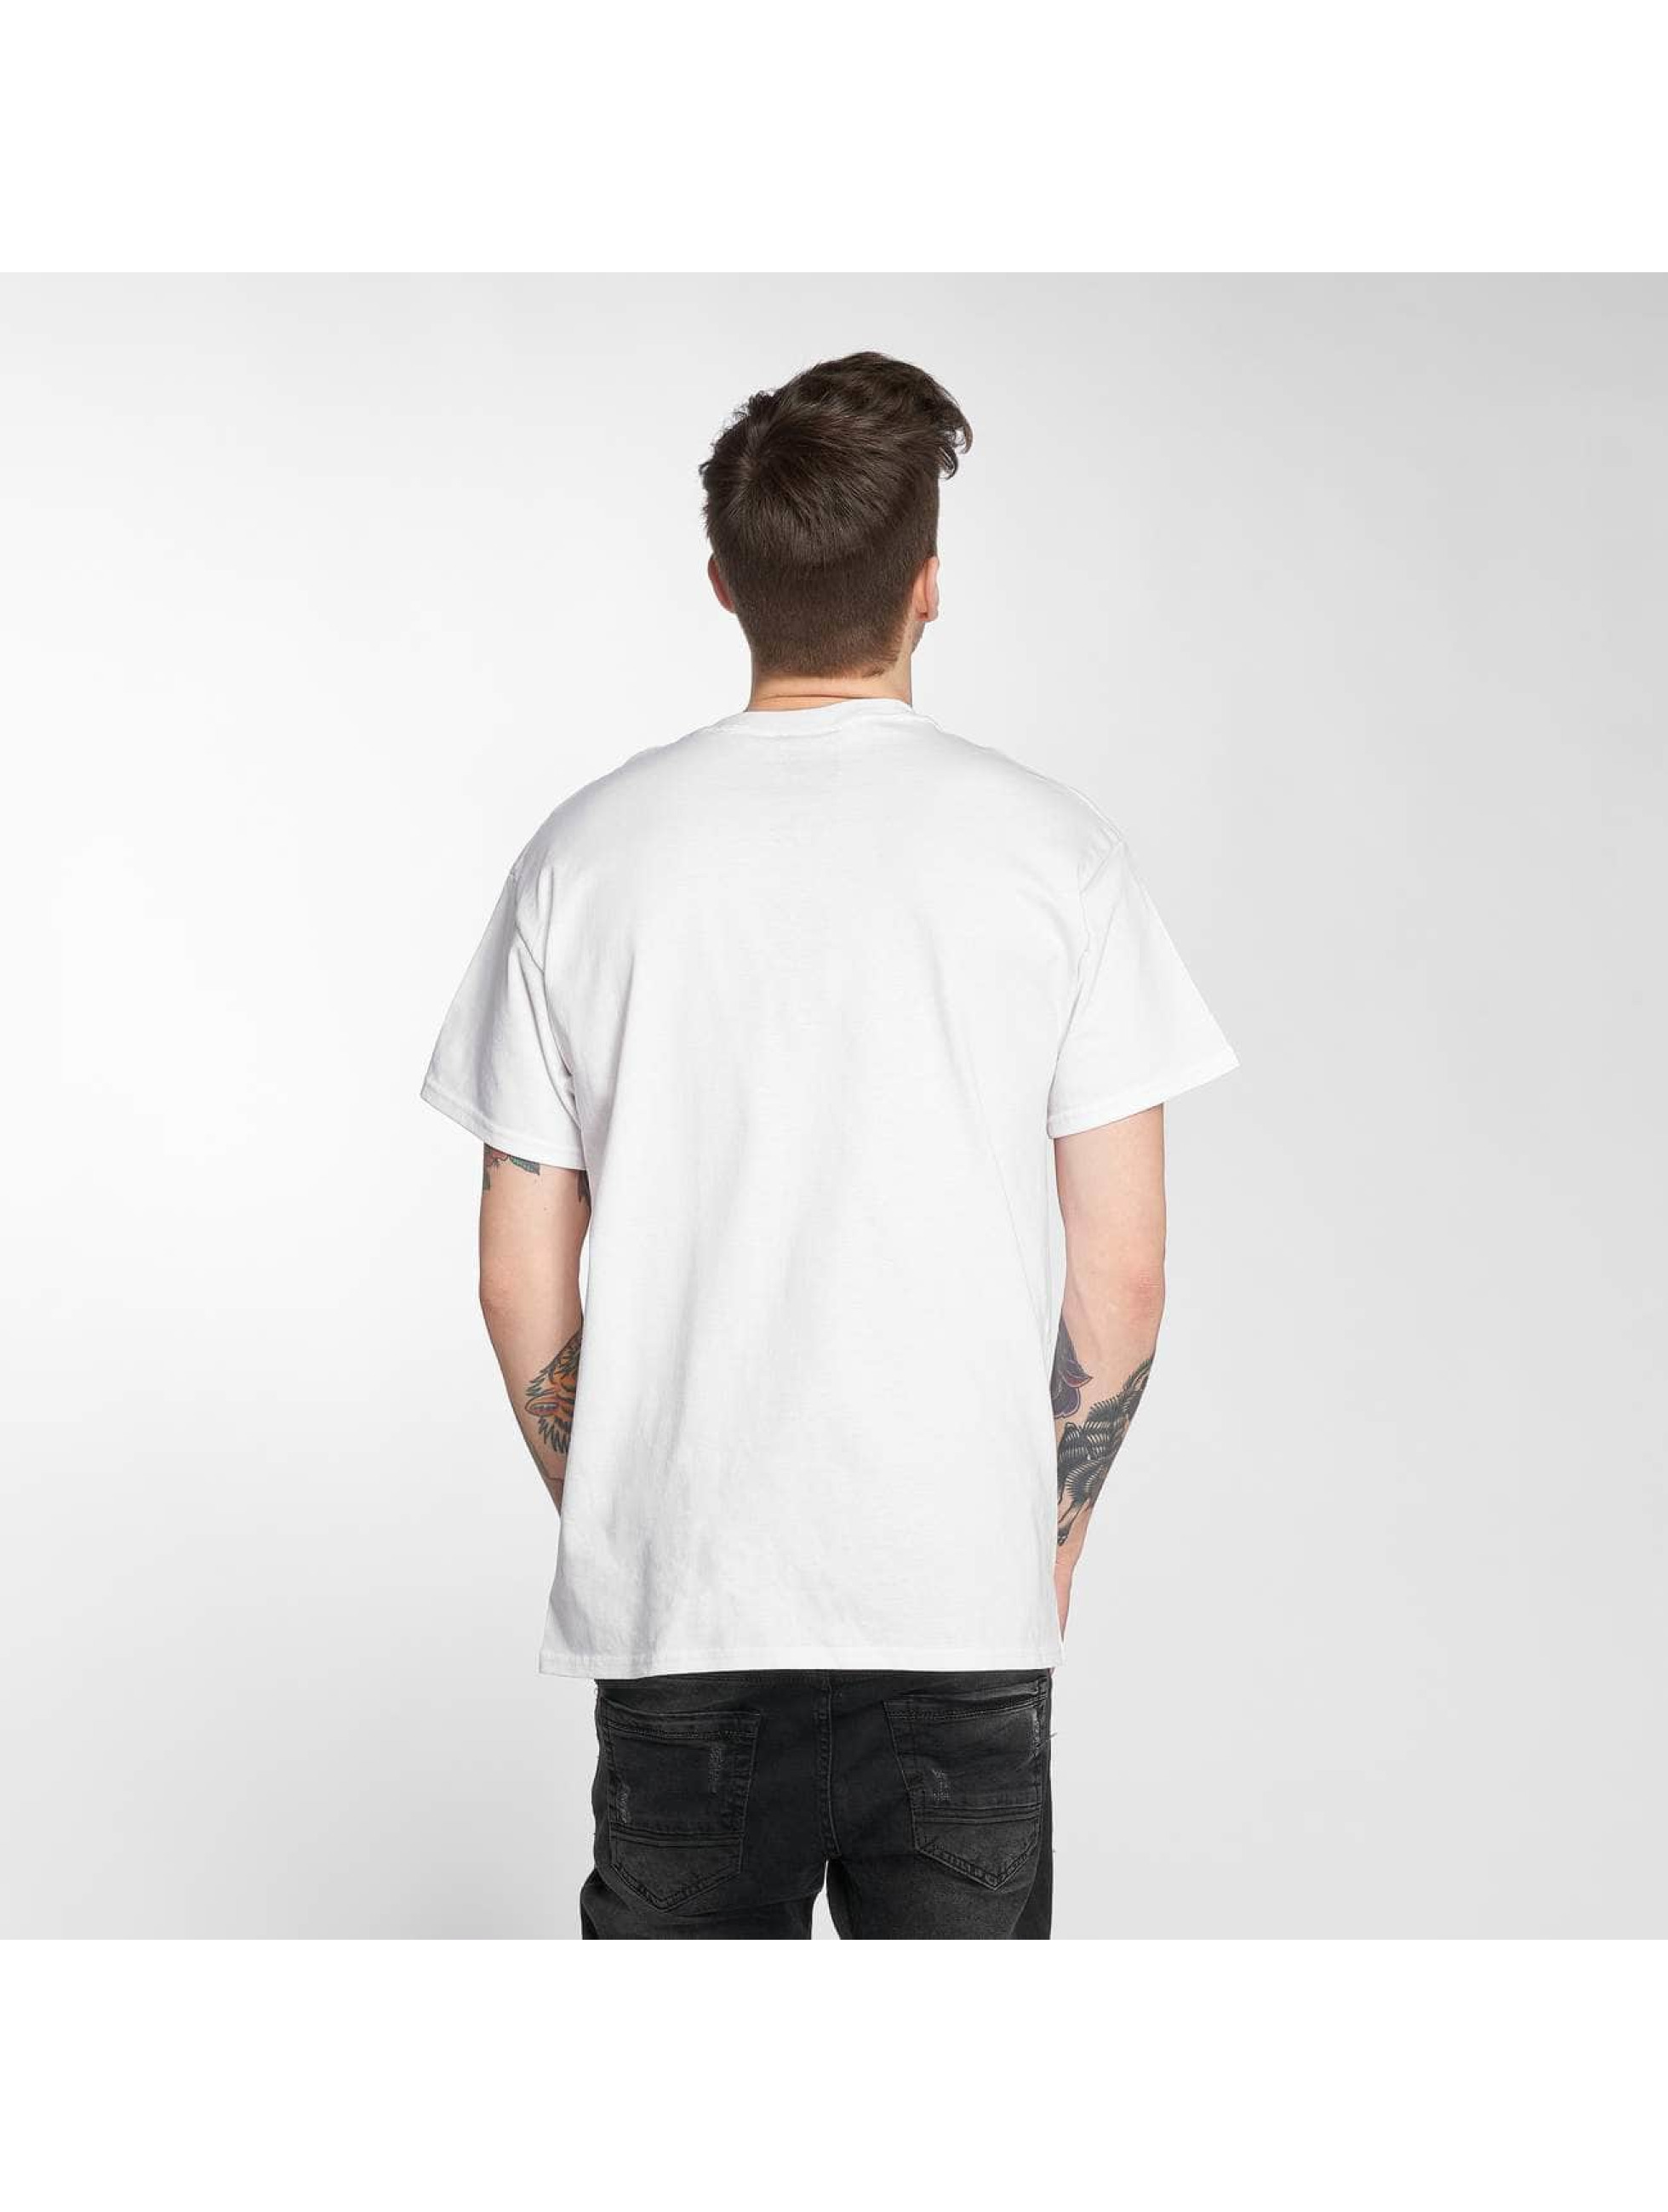 Joker T-Shirt LowLow white